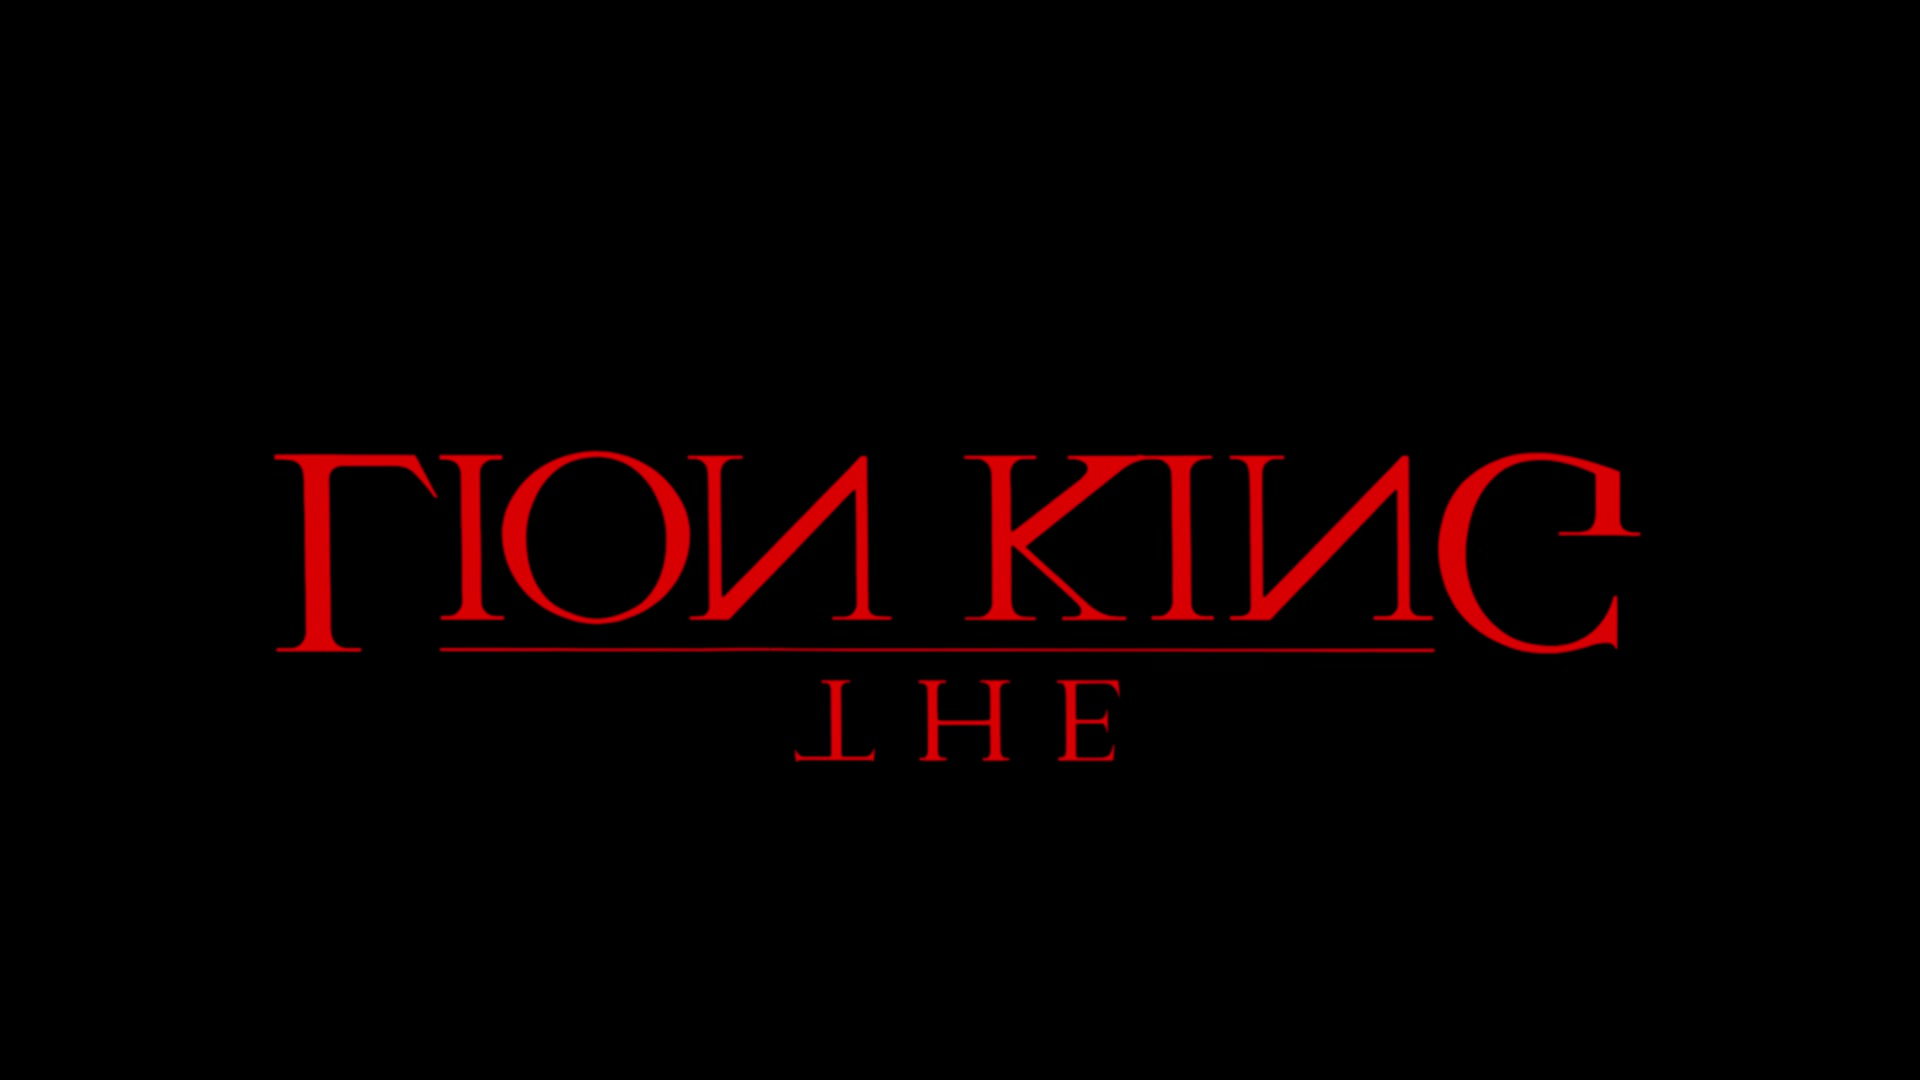 The.Lion.King.1994.BDRemux.1080p.5xRus.Eng.Comments.Subs.AVC.DTS-HD.MA.Theatrical.Cut.mkv_20121212_045352.847.jpg